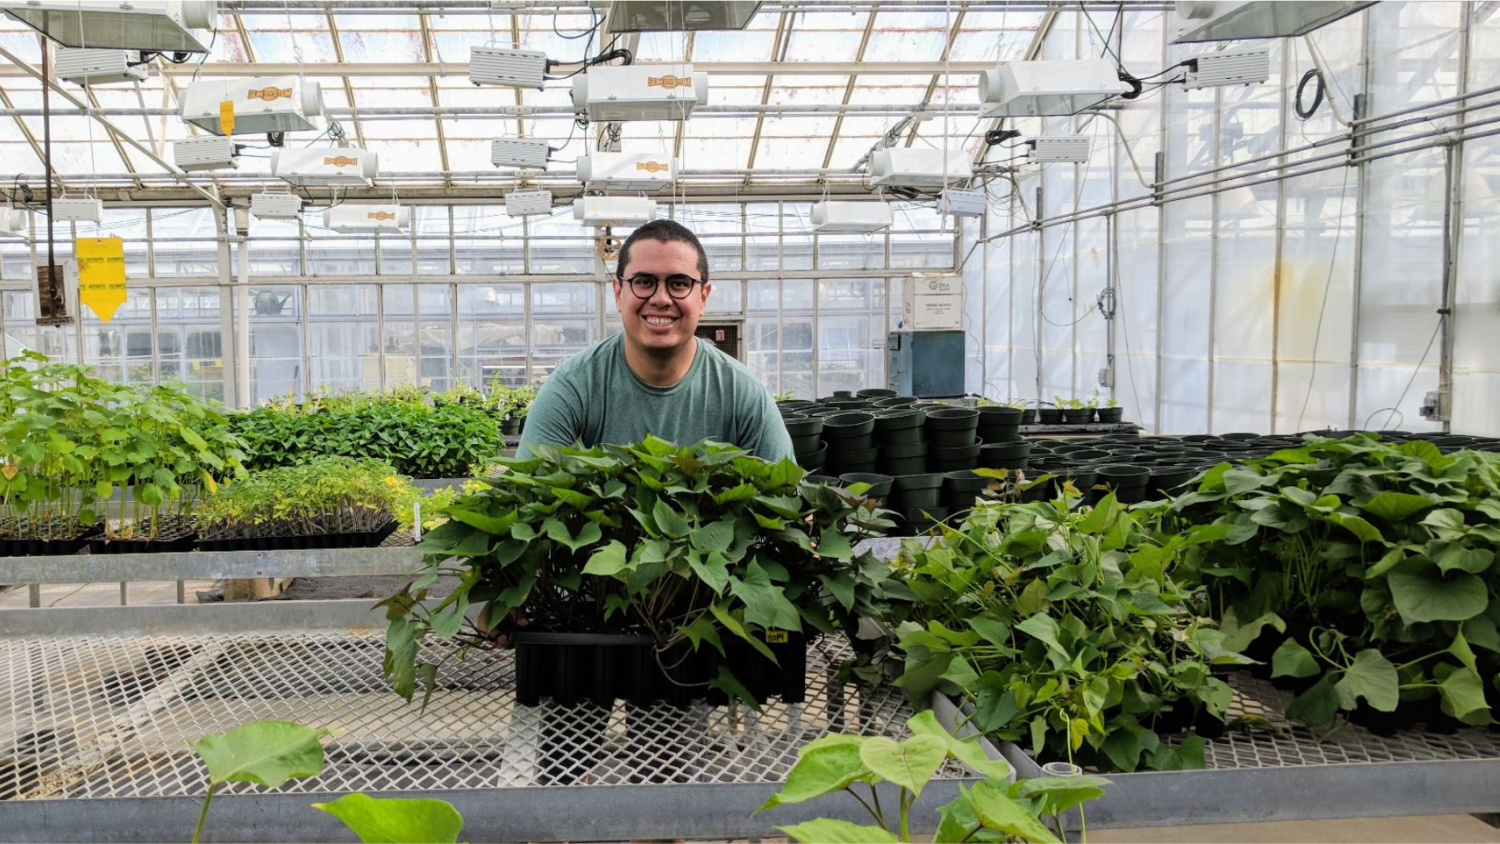 Graduate student in greenhouse with plants.